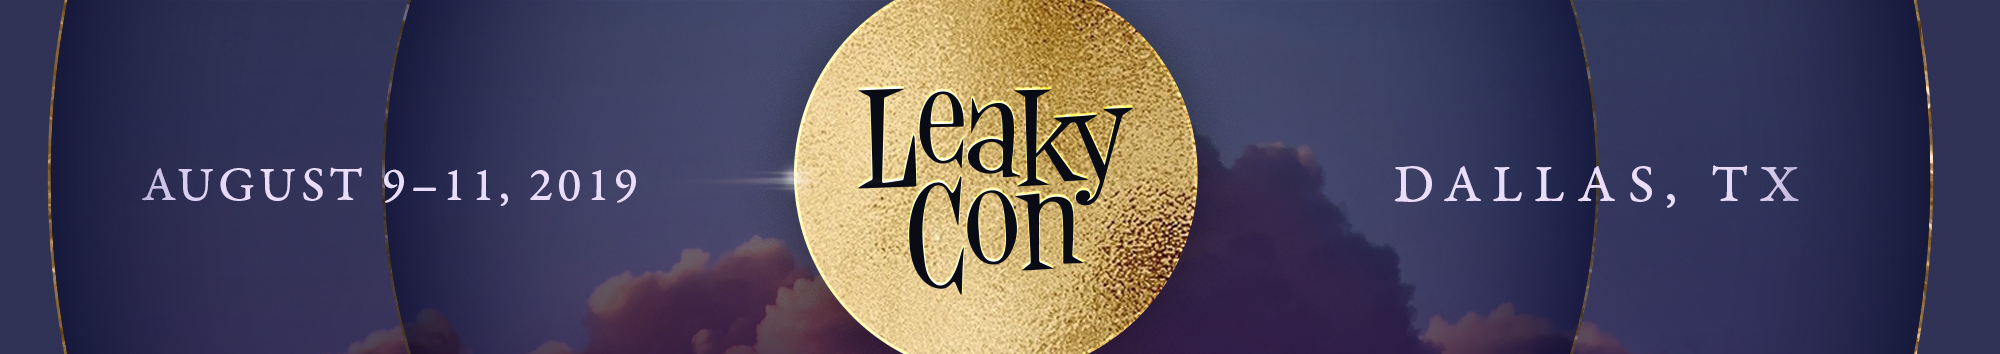 Tickets for LeakyCon 2019: Dallas Add-On Experiences in Dallas from ShowClix